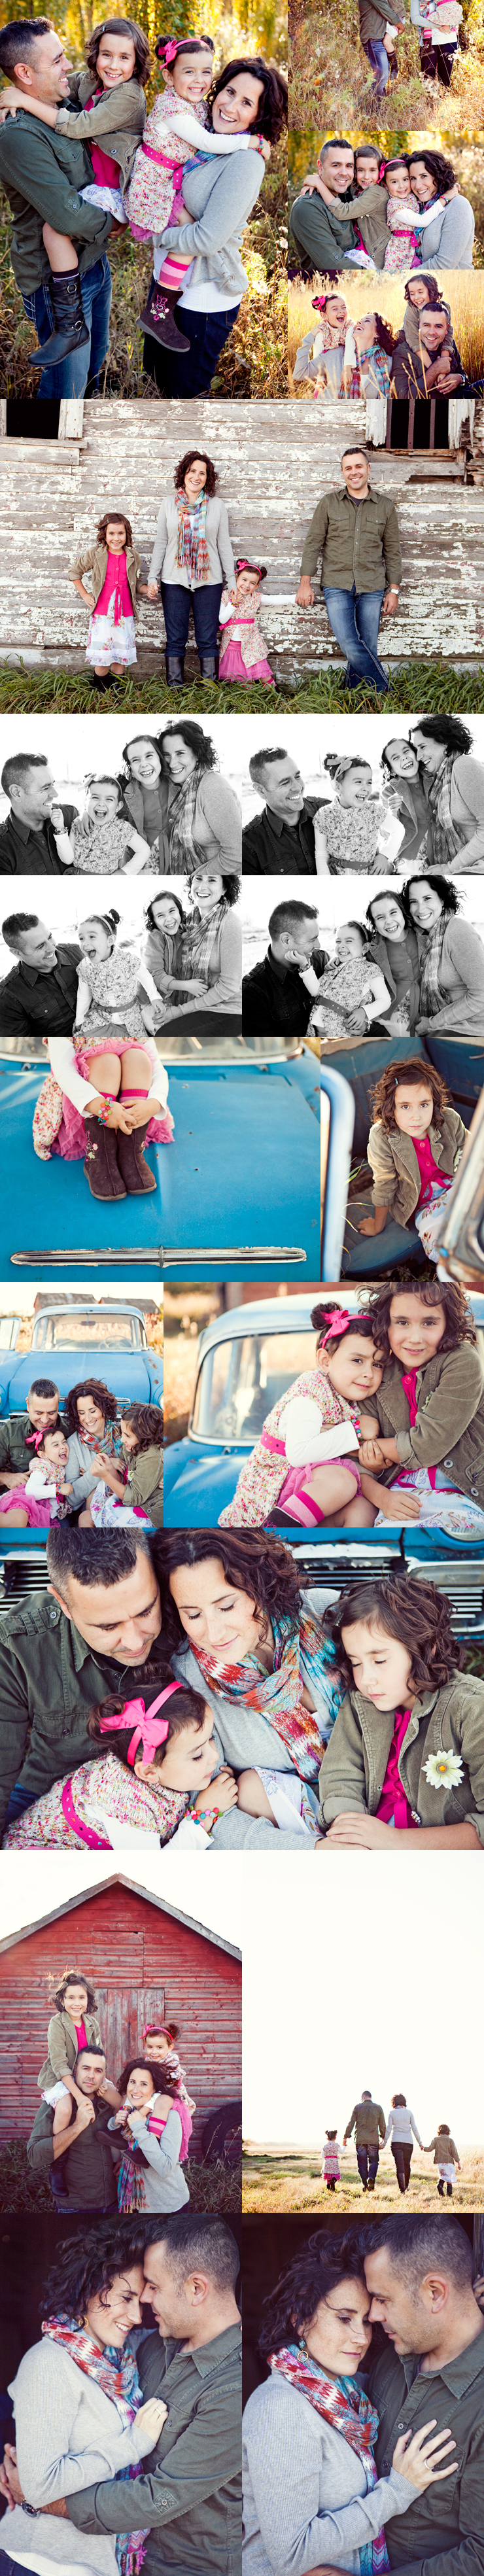 Love the car, the old barn and the photos of the mom & dad!